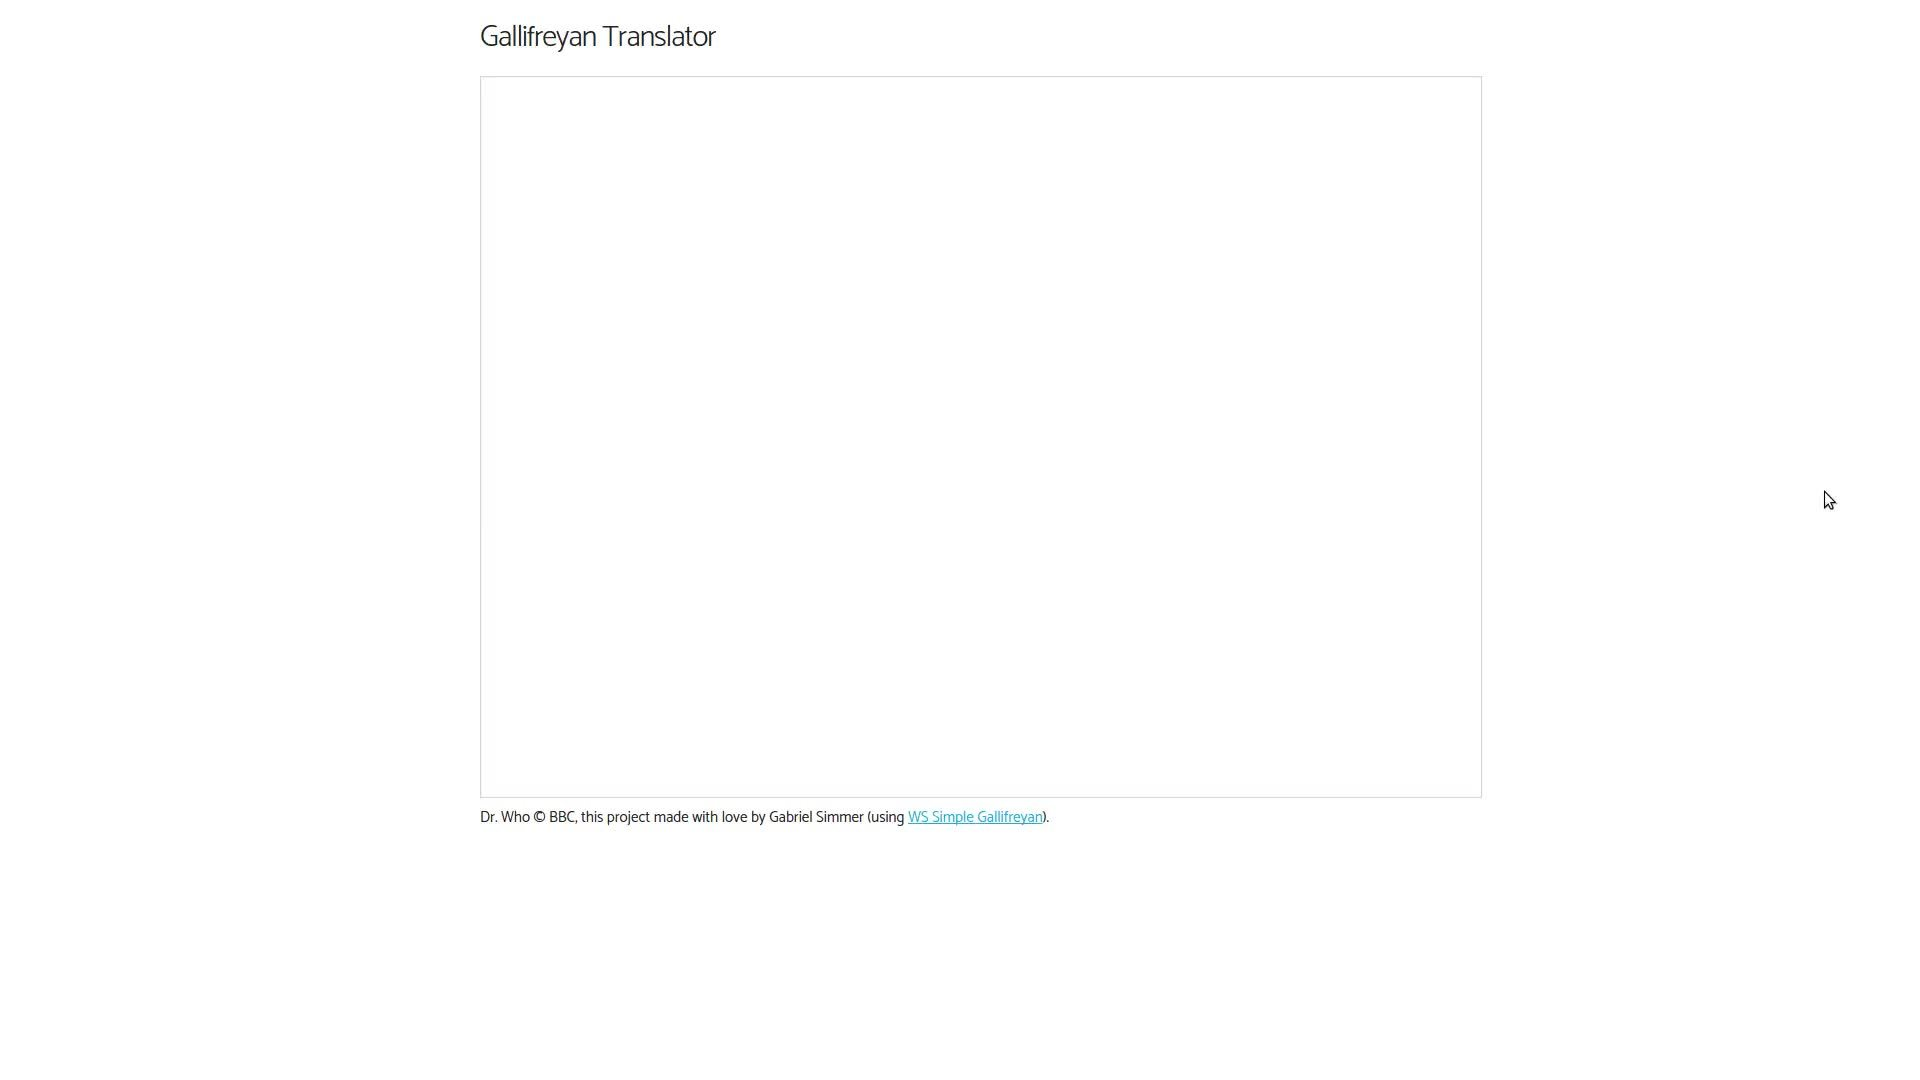 gallifreyan translator